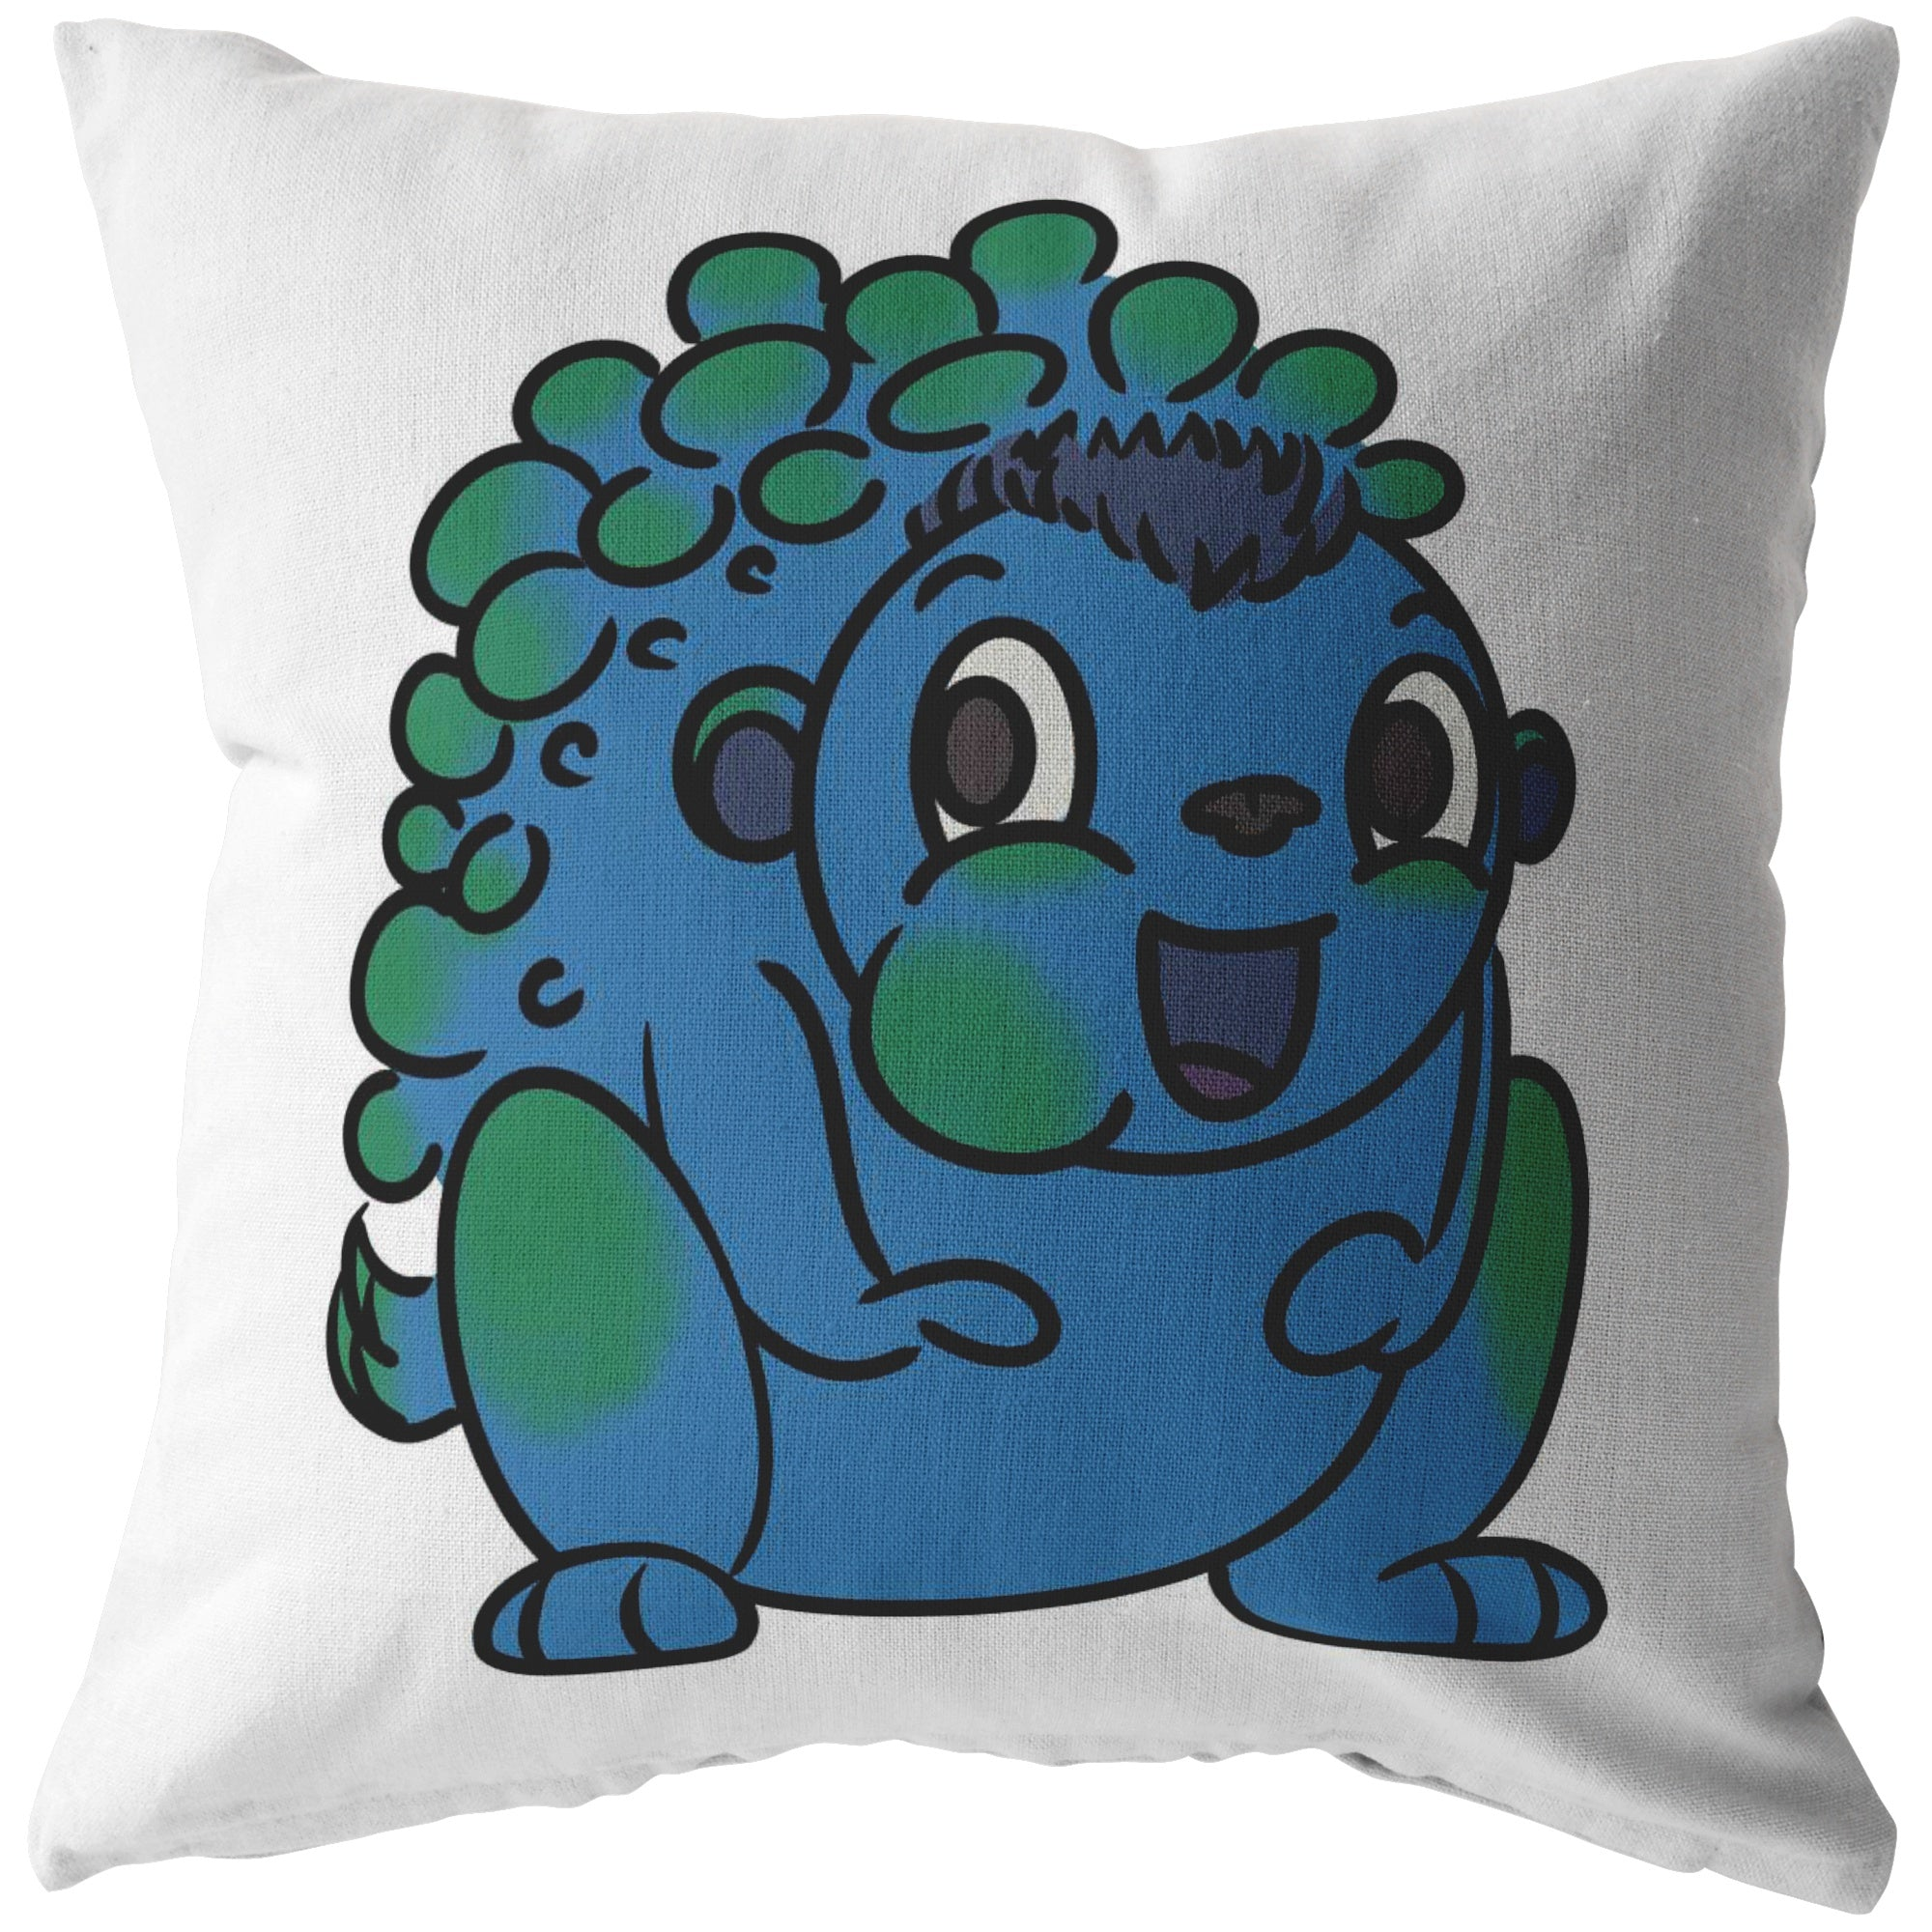 Ned the Neurofibromatosis Monster Pillow - The Unchargeables